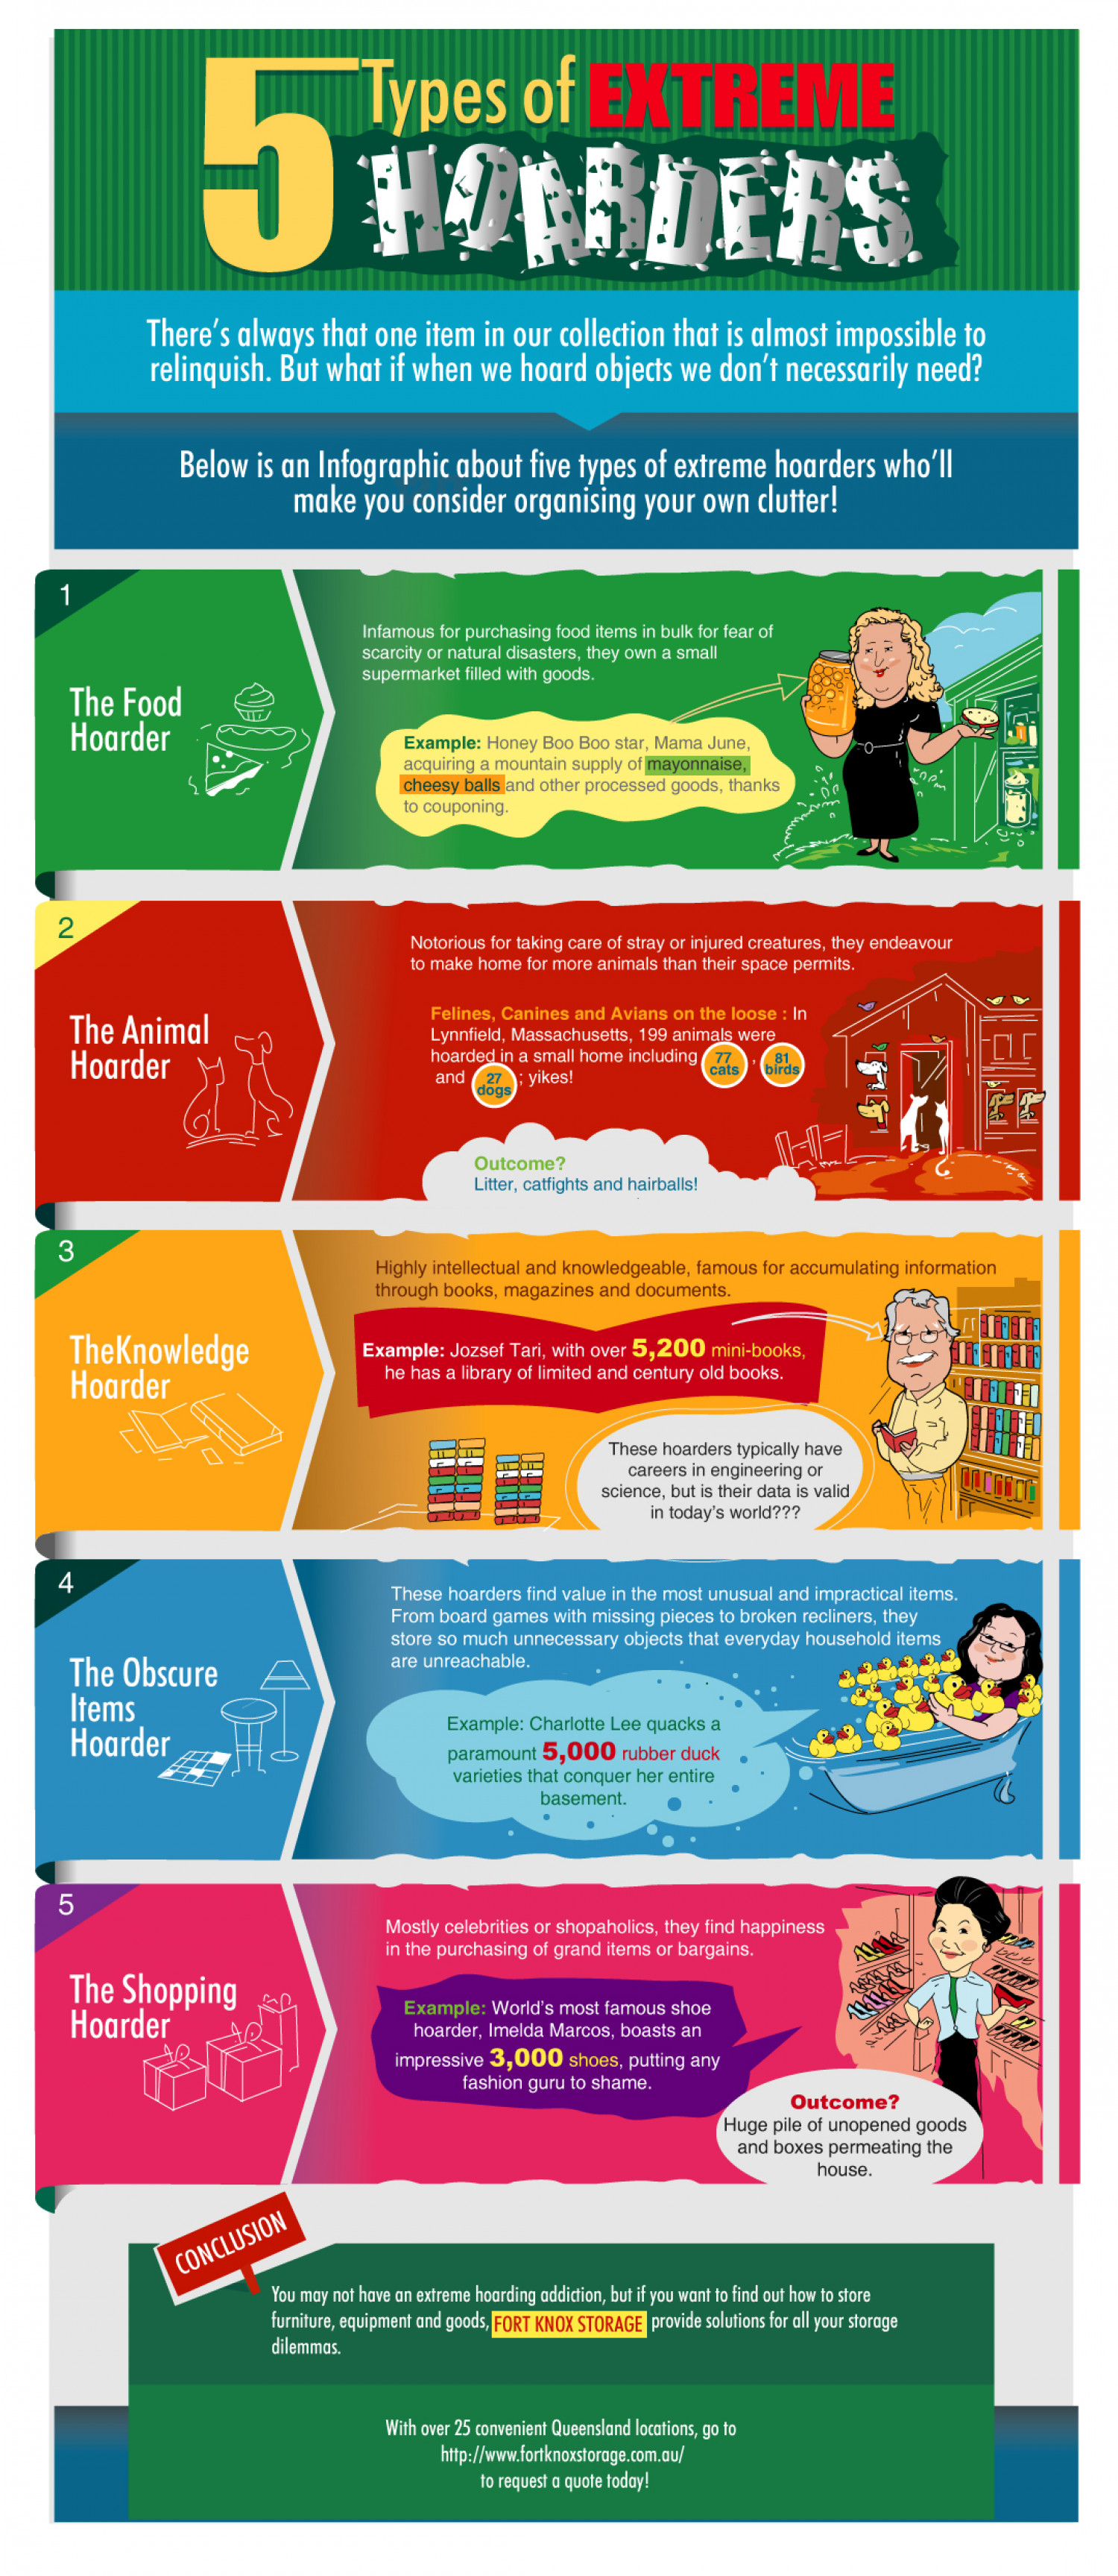 5 Types of Extreme Hoarders Infographic